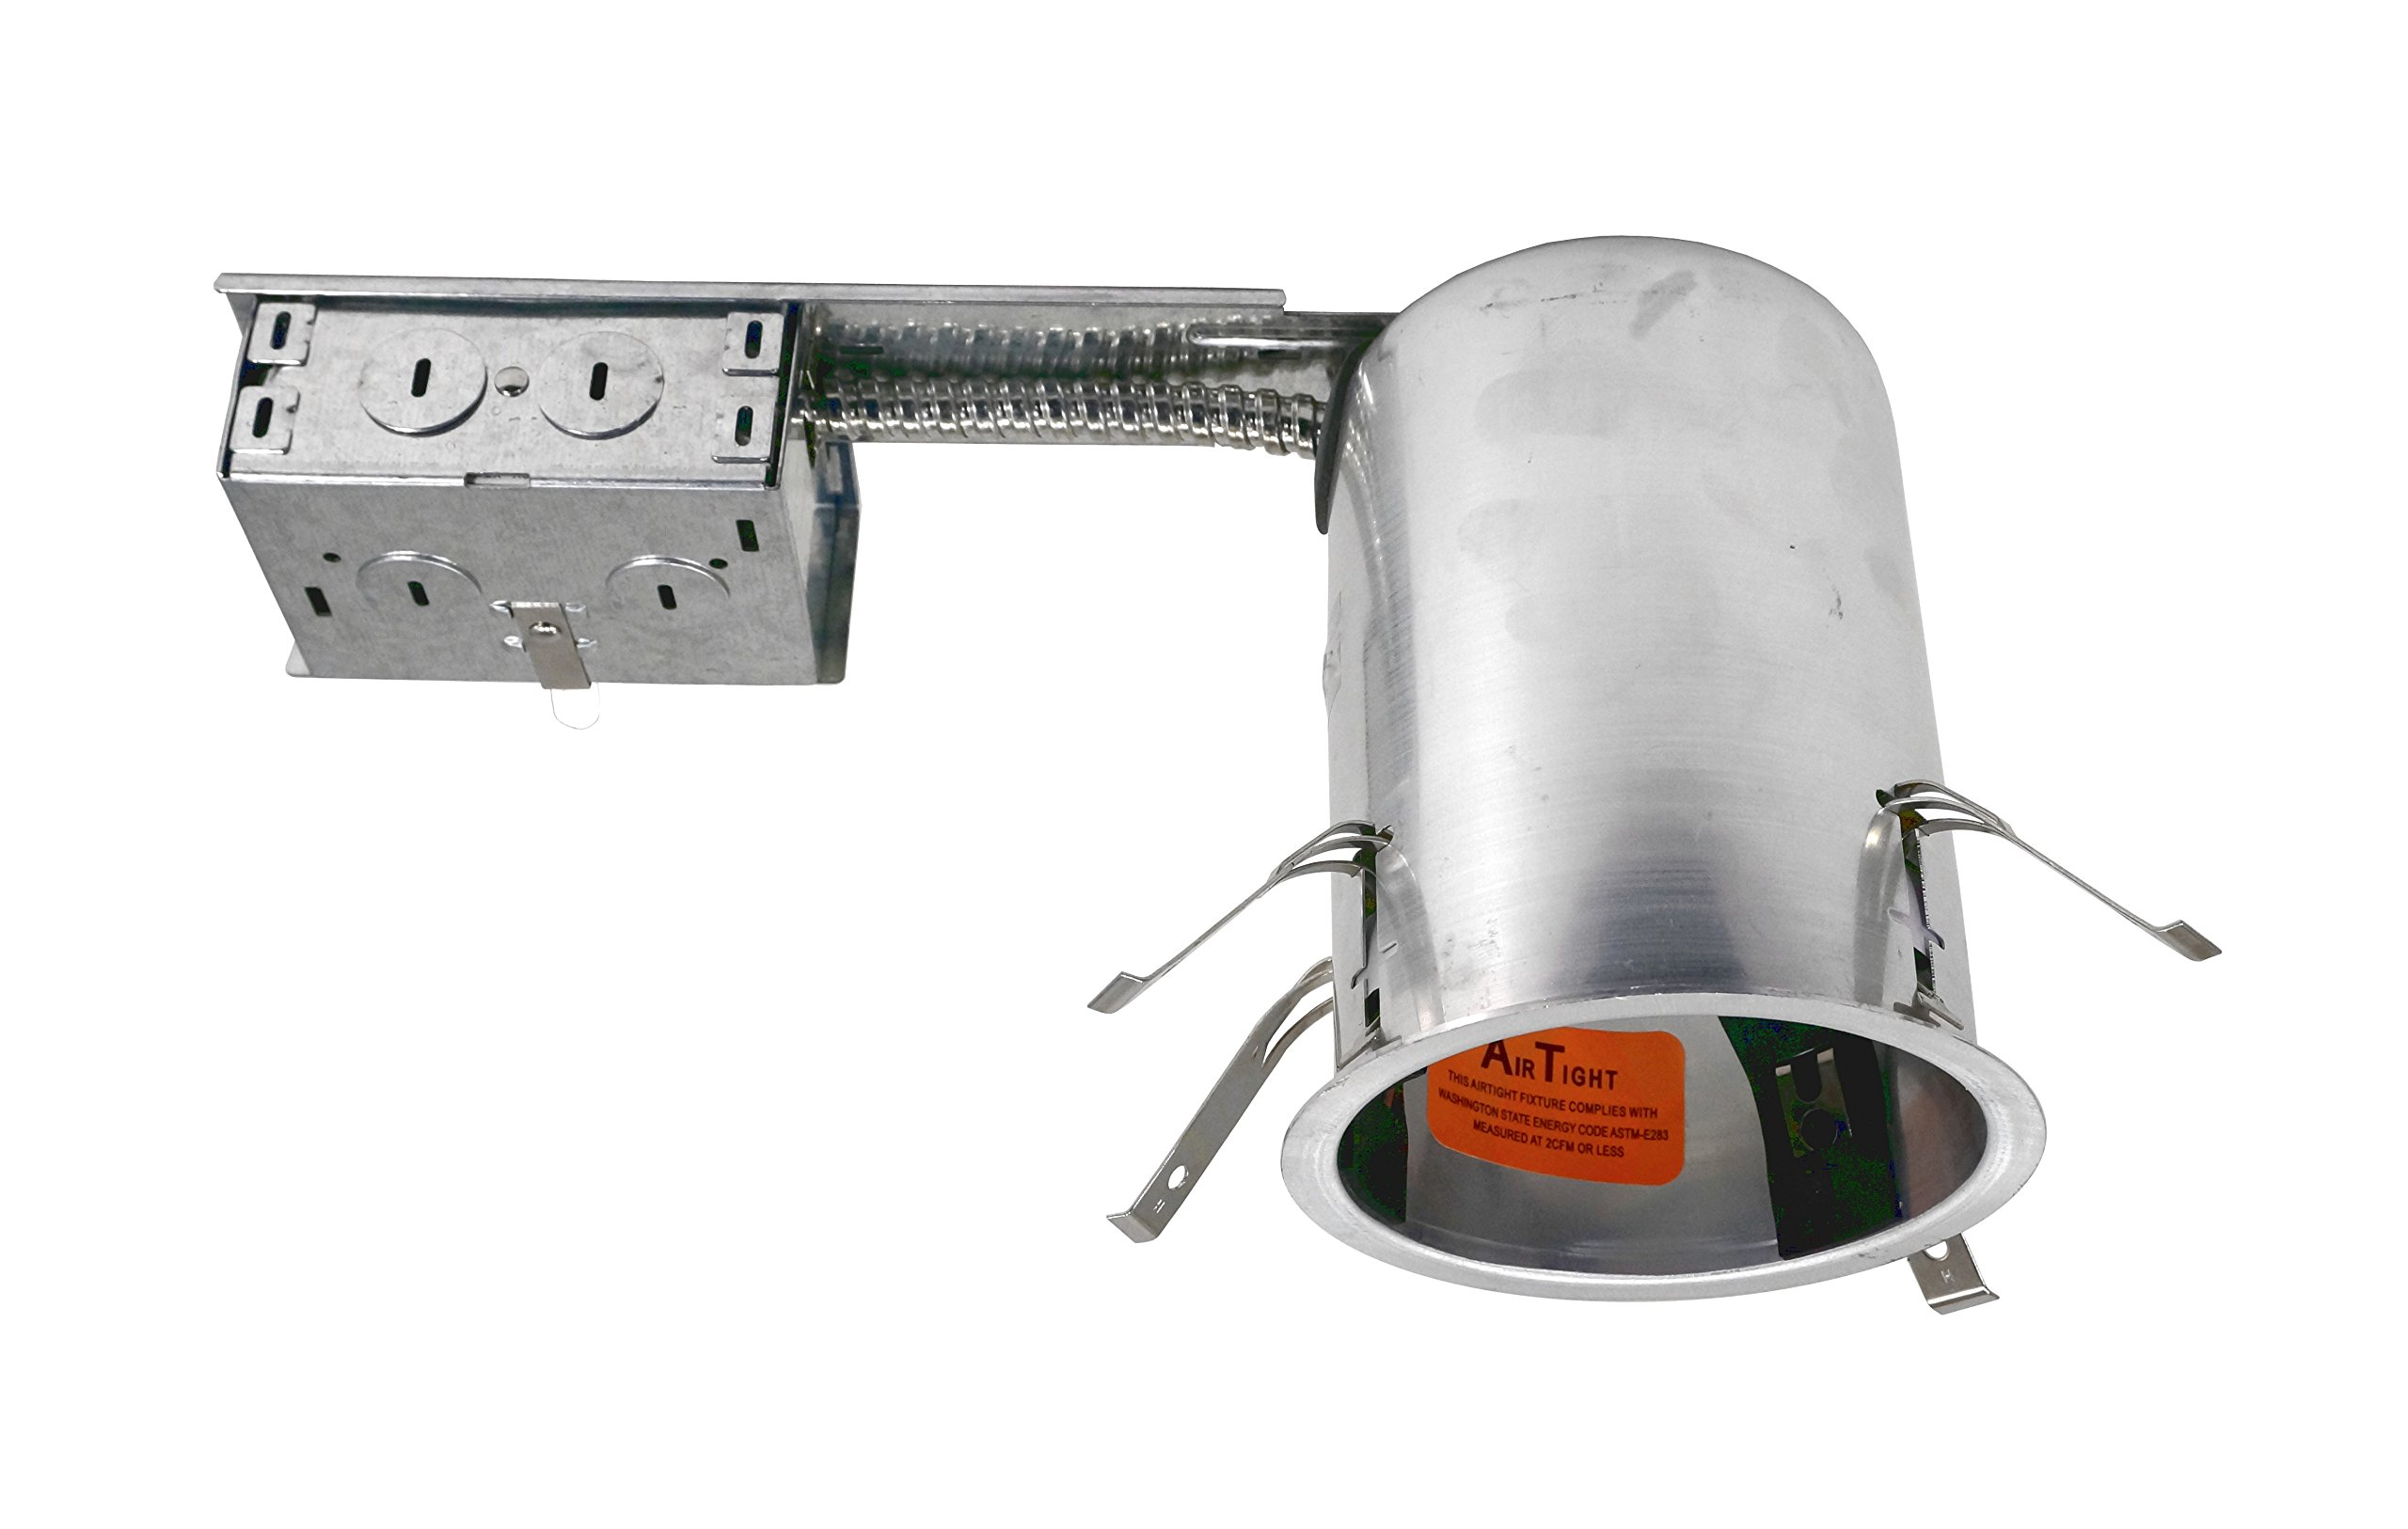 NICOR Lighting 4-inch IC-Rated Line-Voltage Aluminum Airtight Remodel Housing (19005AR)